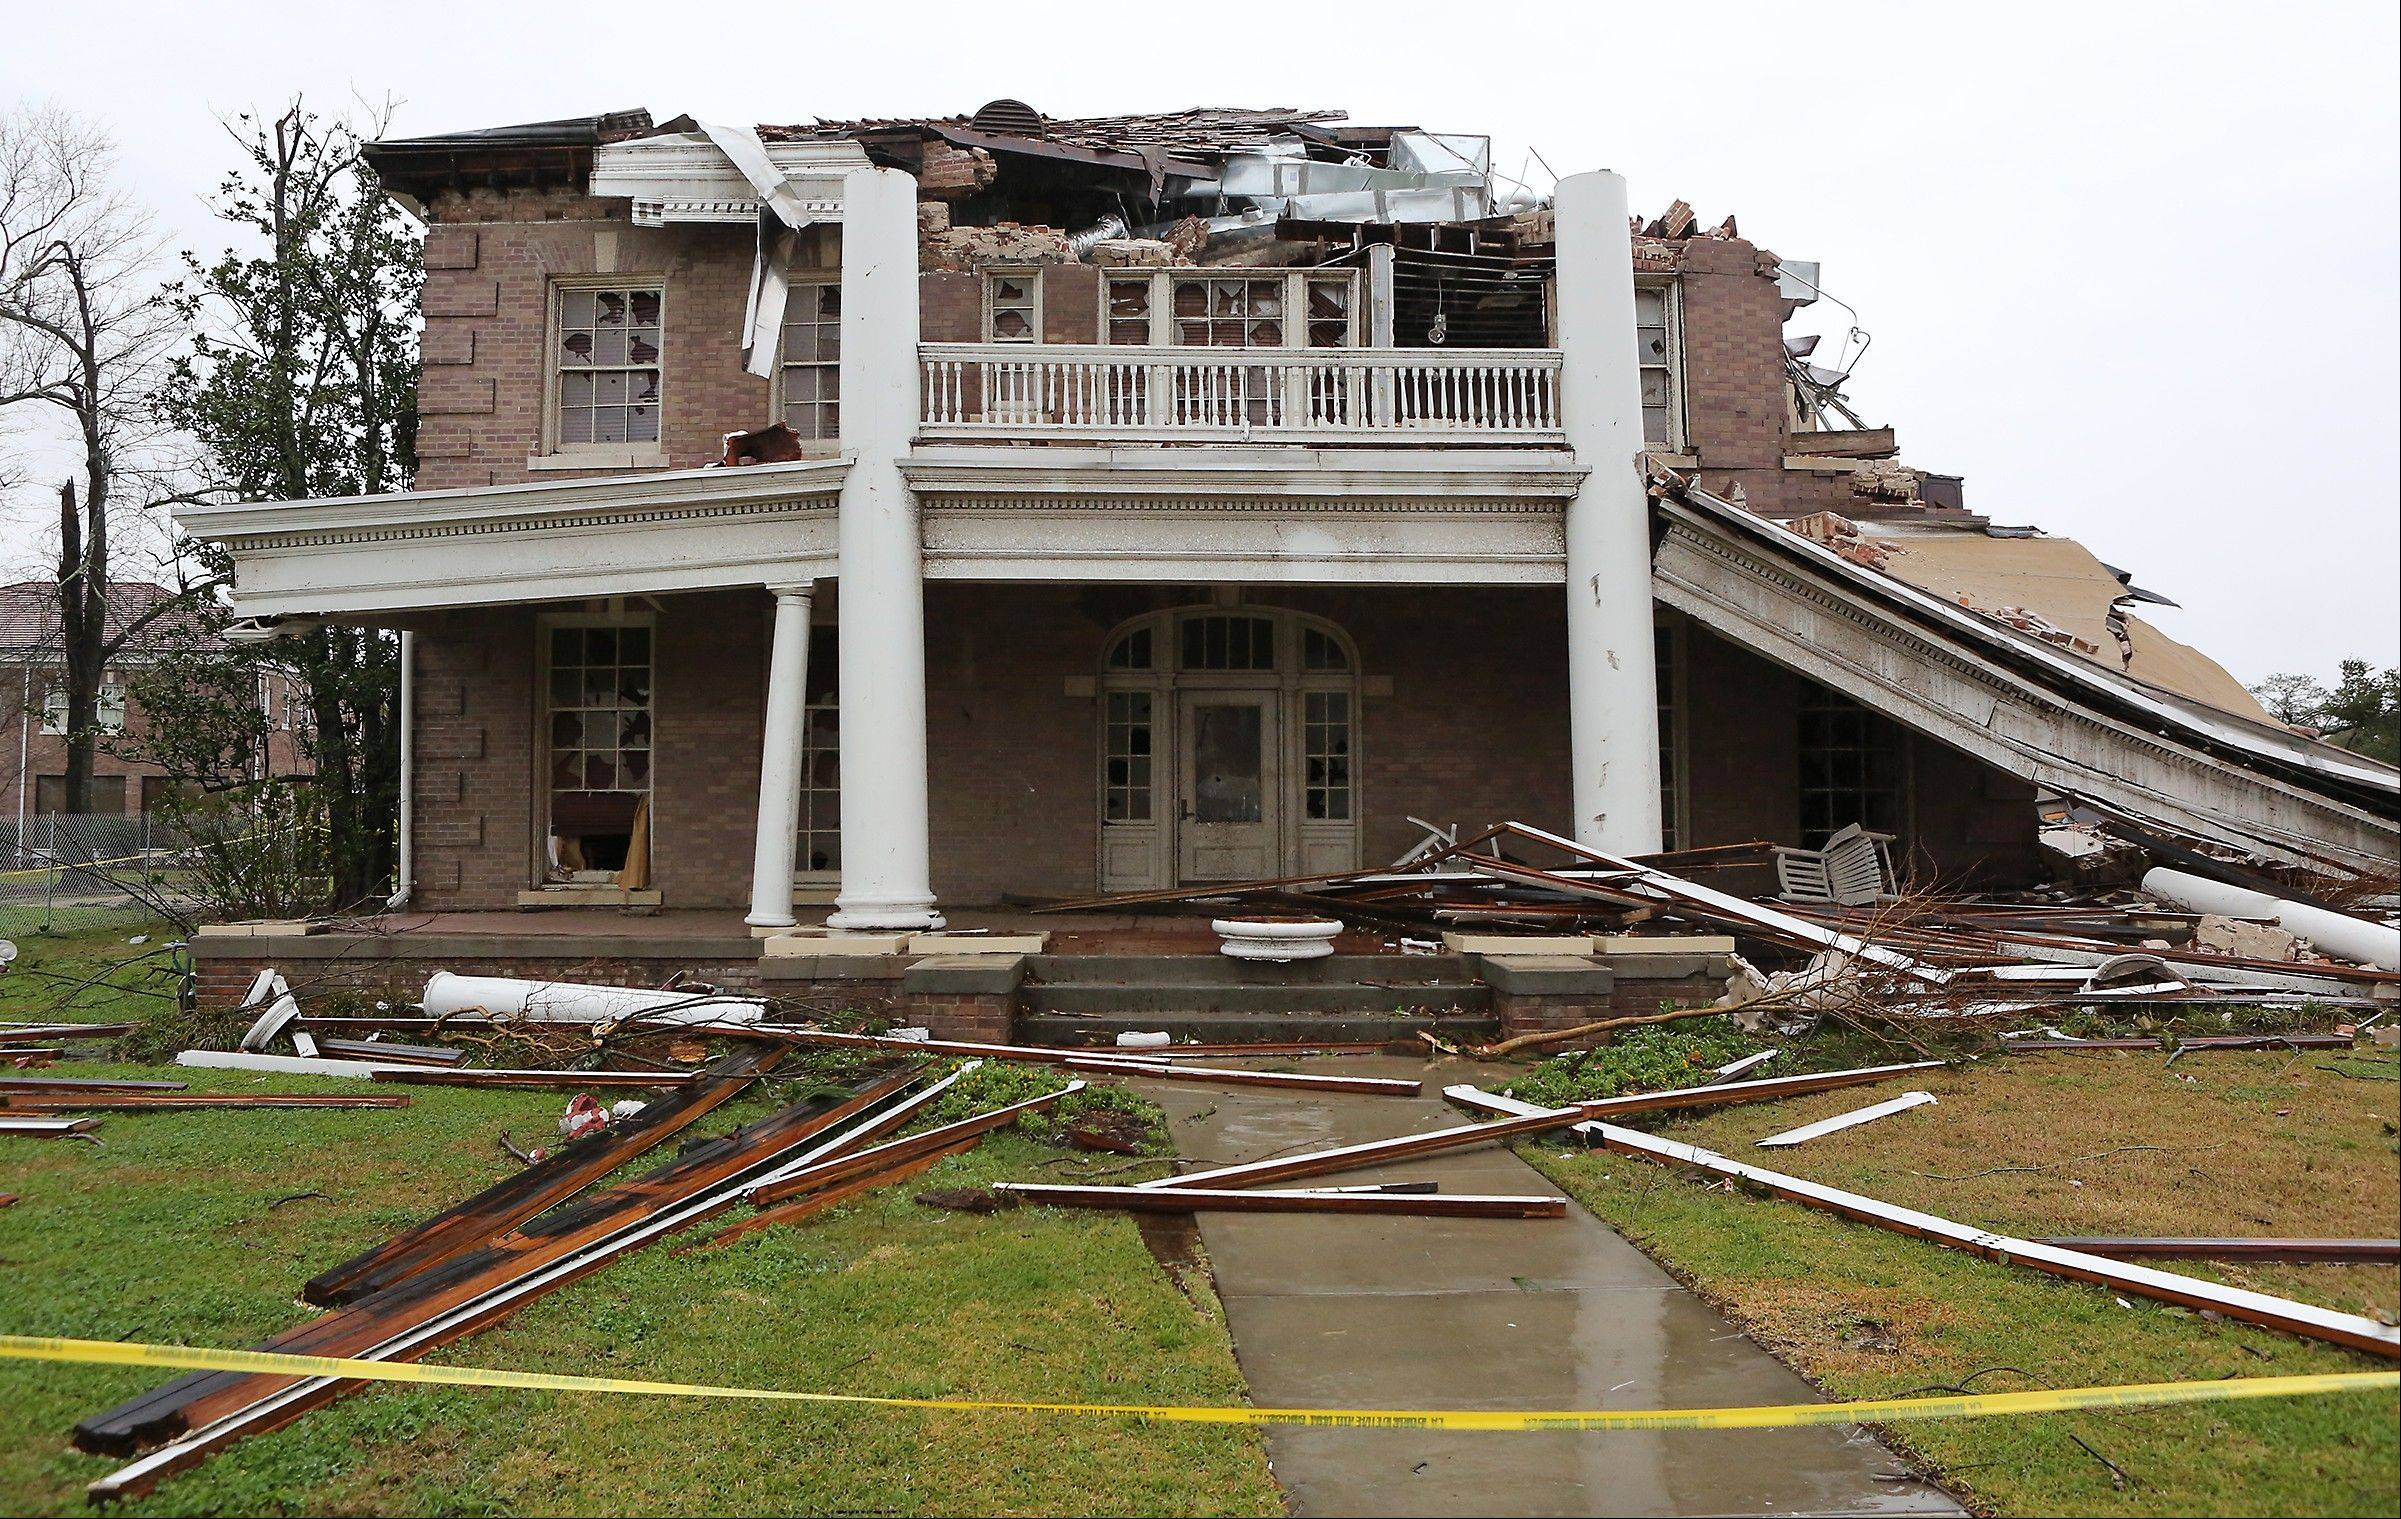 The historic Ogletree Alumni House on the University of Southern Mississippi campus shows heavy damaged Monday, Feb. 11, 2013, the day after an evening tornado ripped through the University of Southern Mississippi and surrounding areas in Hattiesburg, Miss.